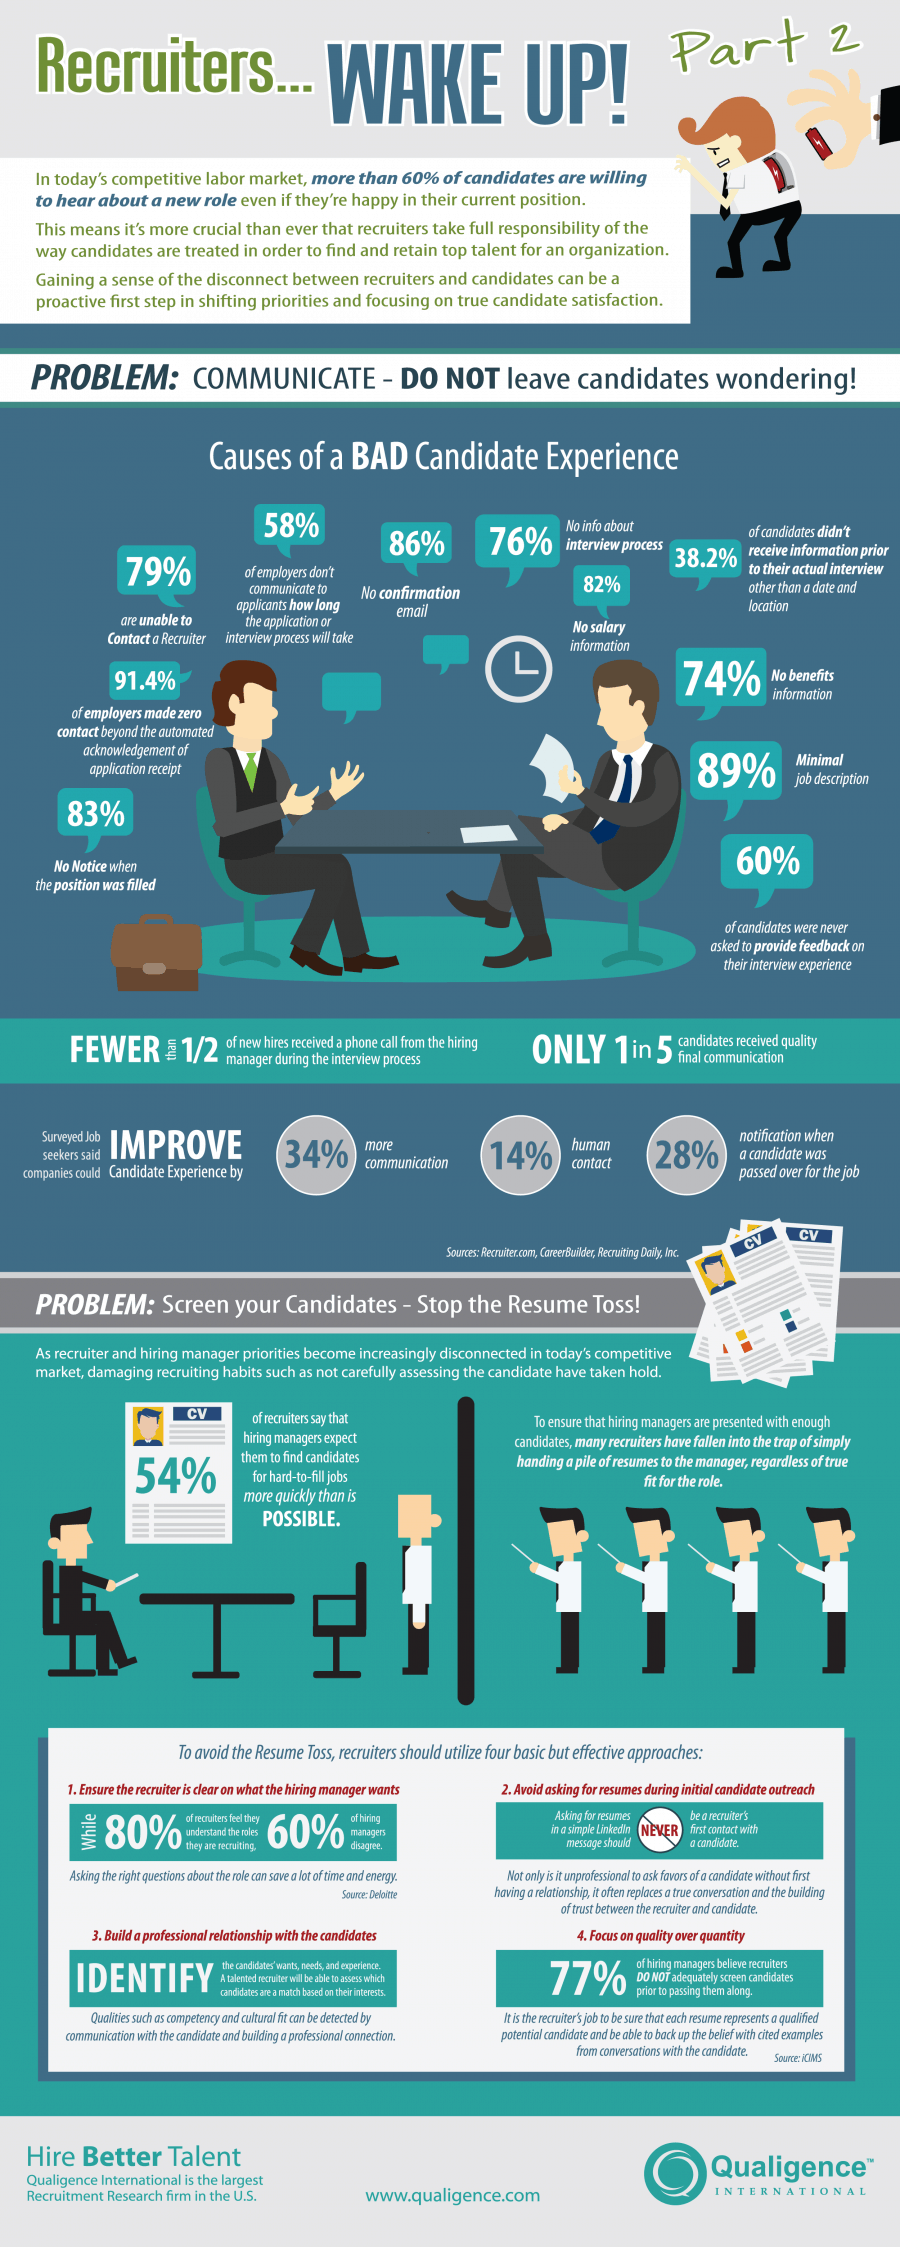 How Can Recruiters Improve the Candidate Experience